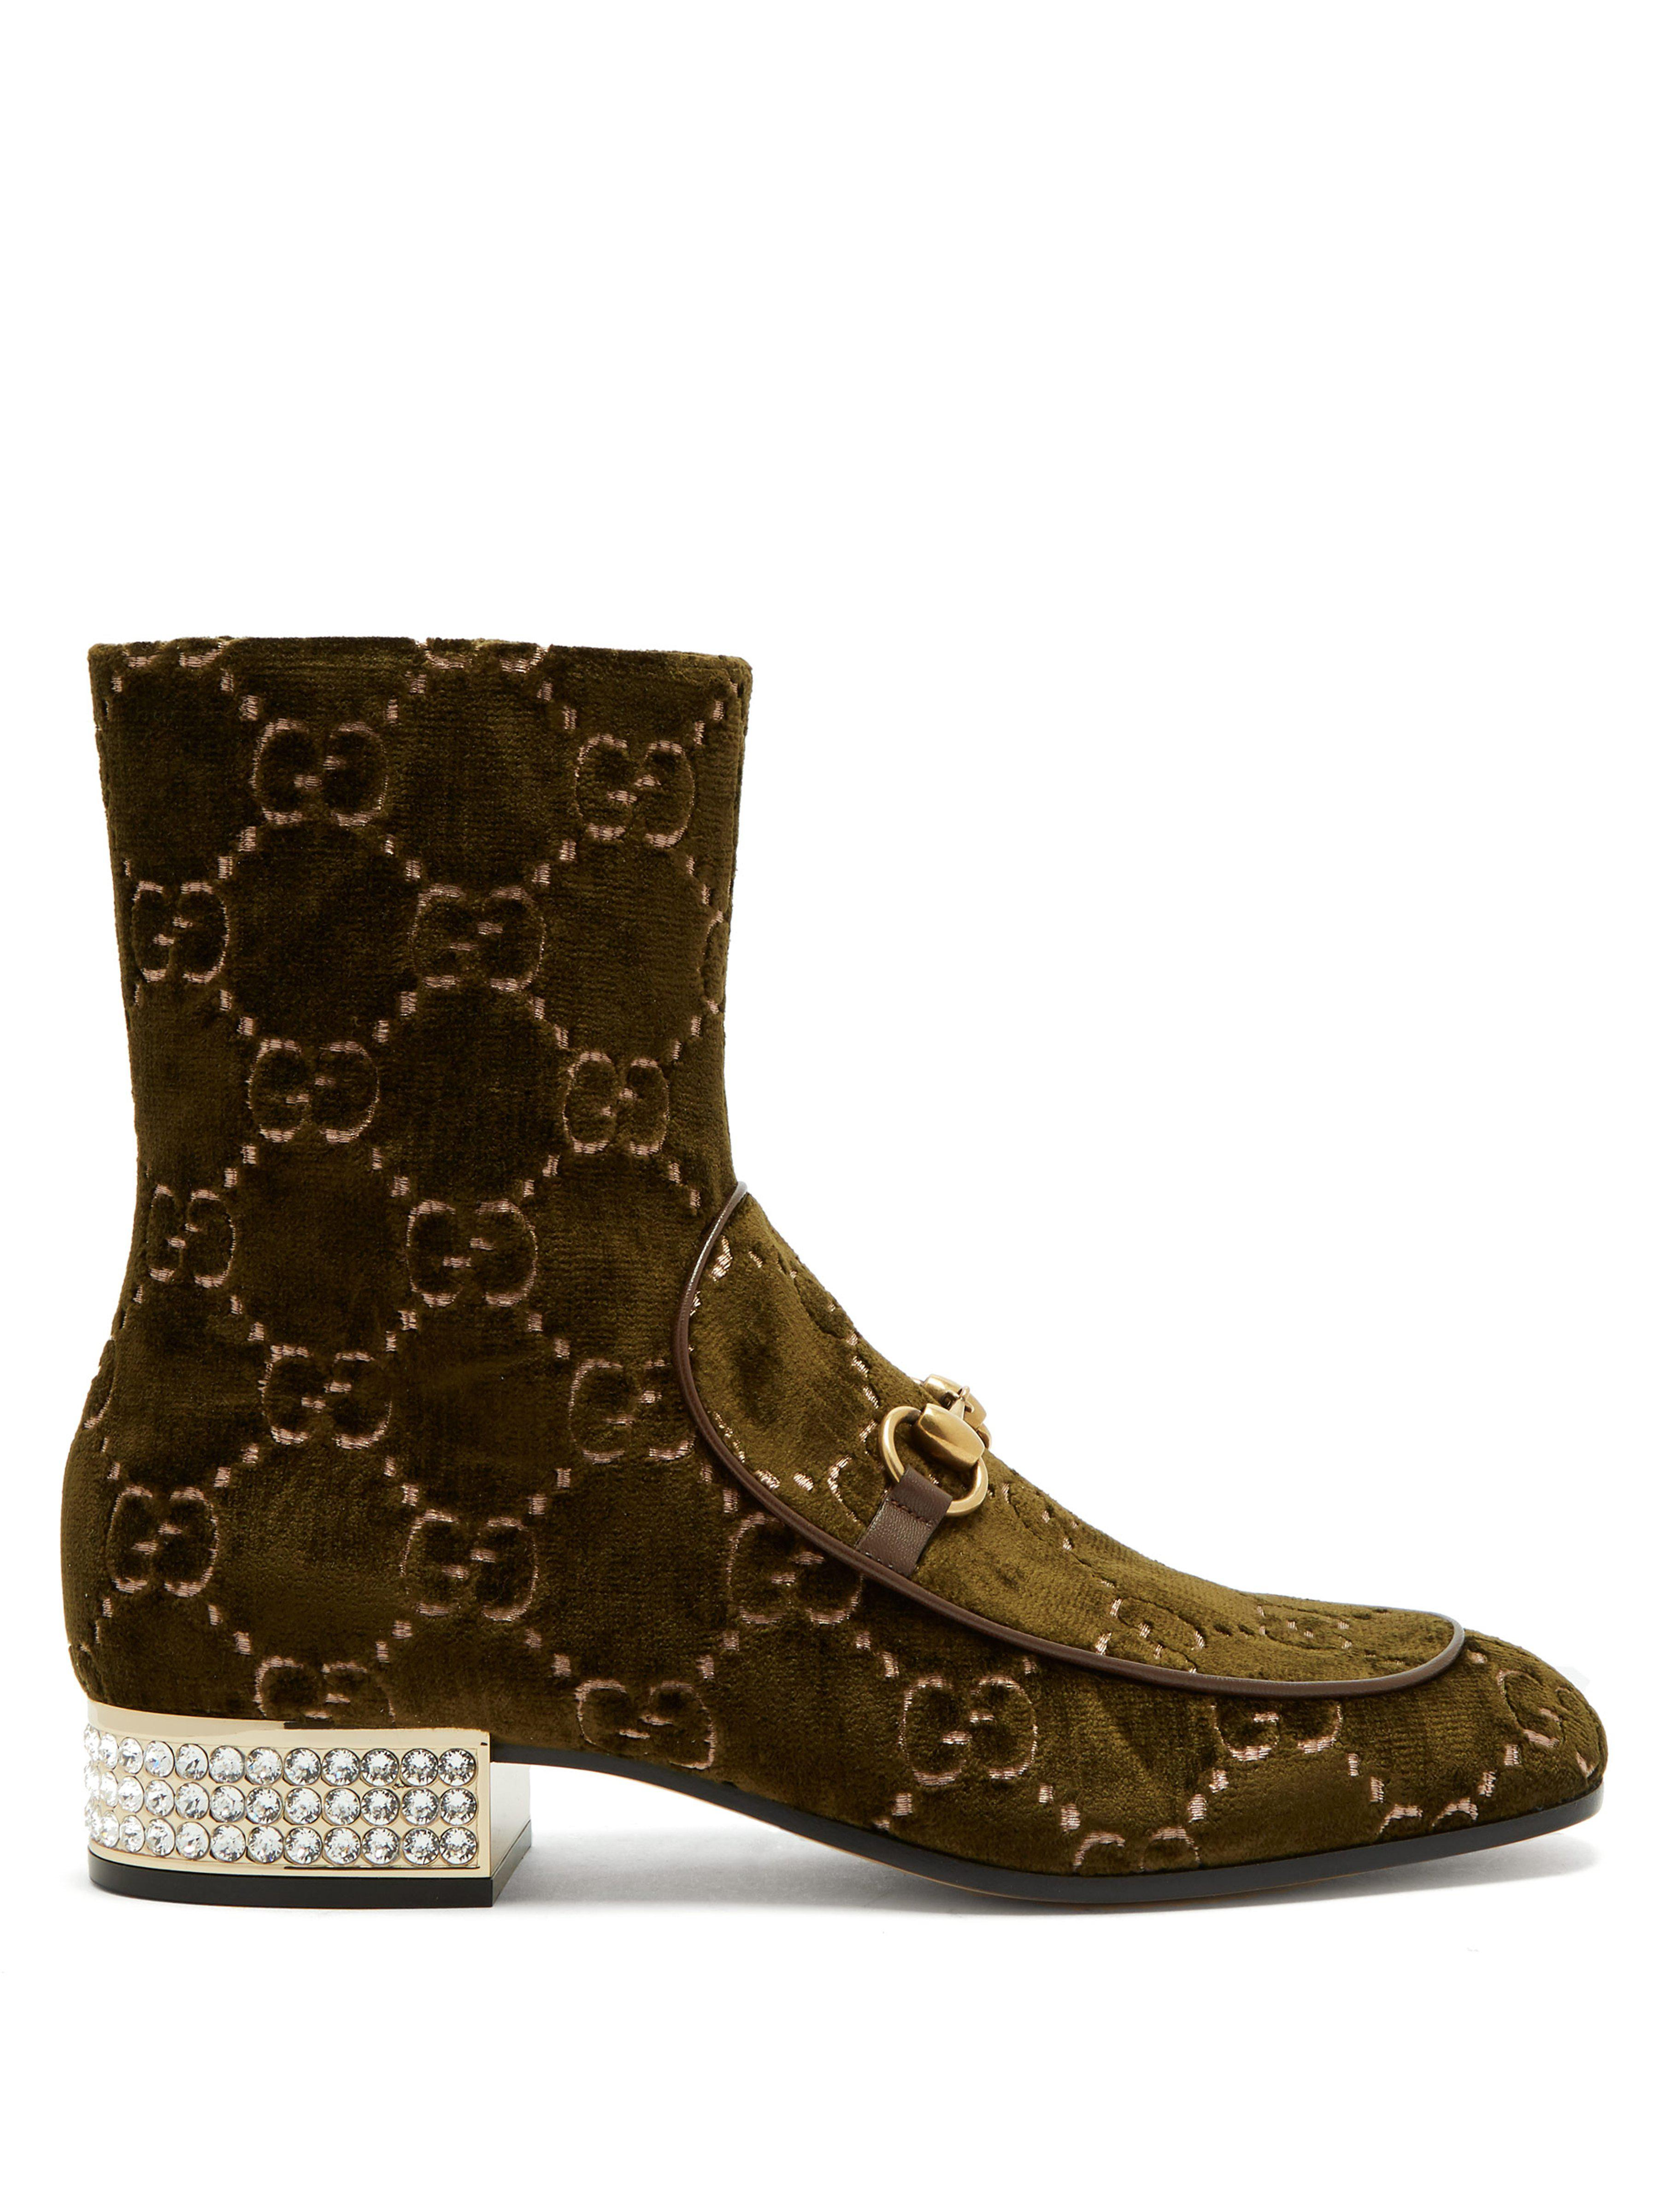 fbdc71ffa80b09 Gucci Mister Logo Jacquard Velvet Ankle Boots in Green - Lyst